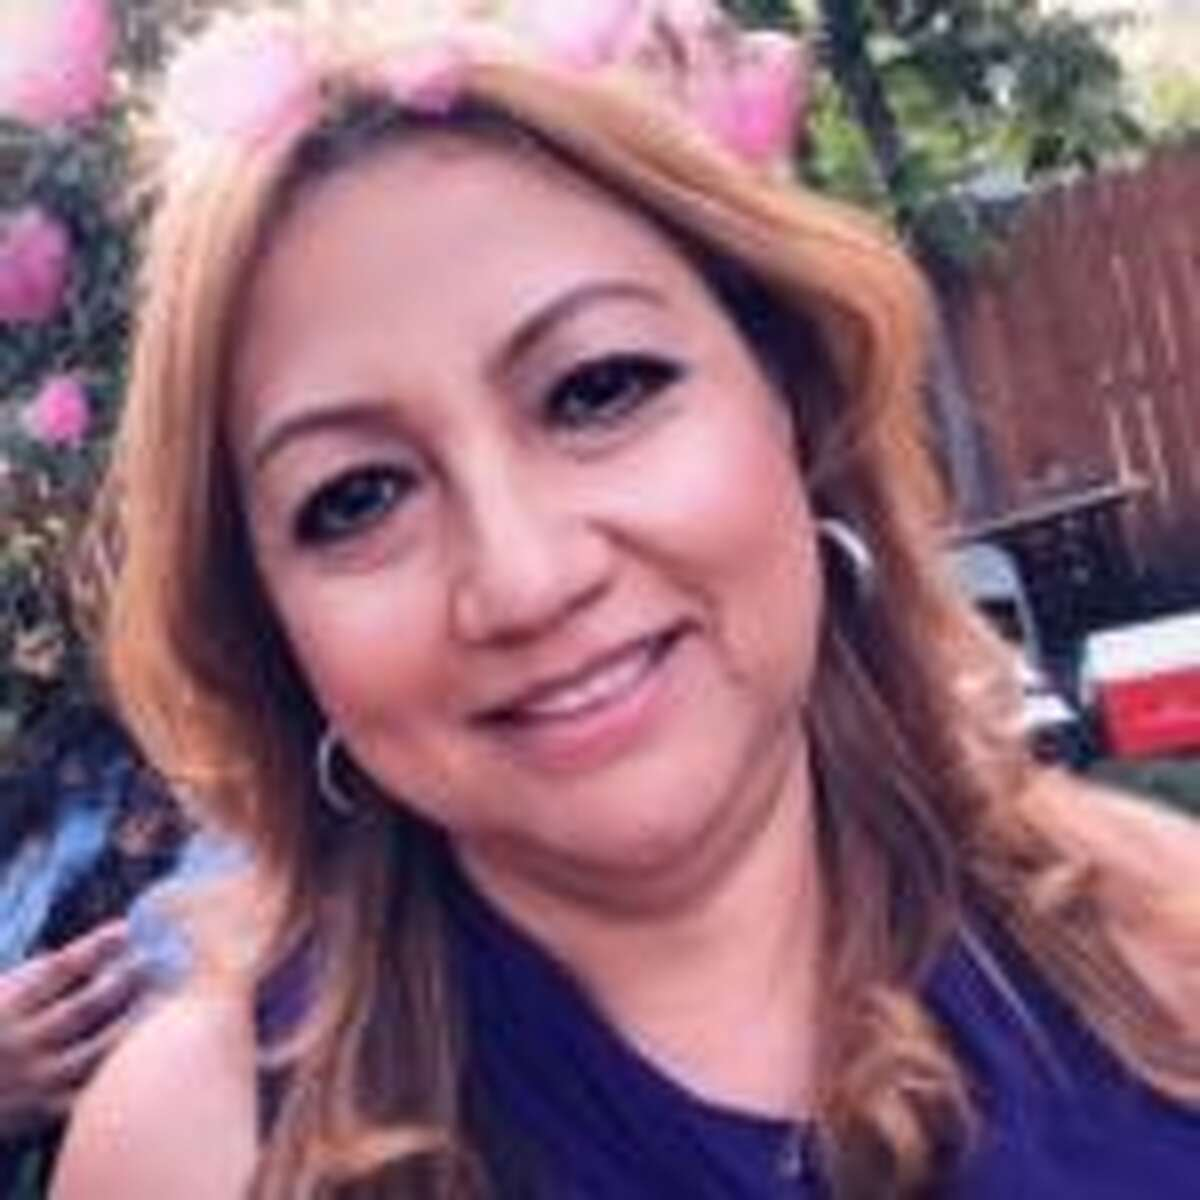 Eleticia Martinez was a 52-year-old Hispanic woman who died February 27, 2019 from multiple gunshot wounds at 815 Harbor St., Houston.